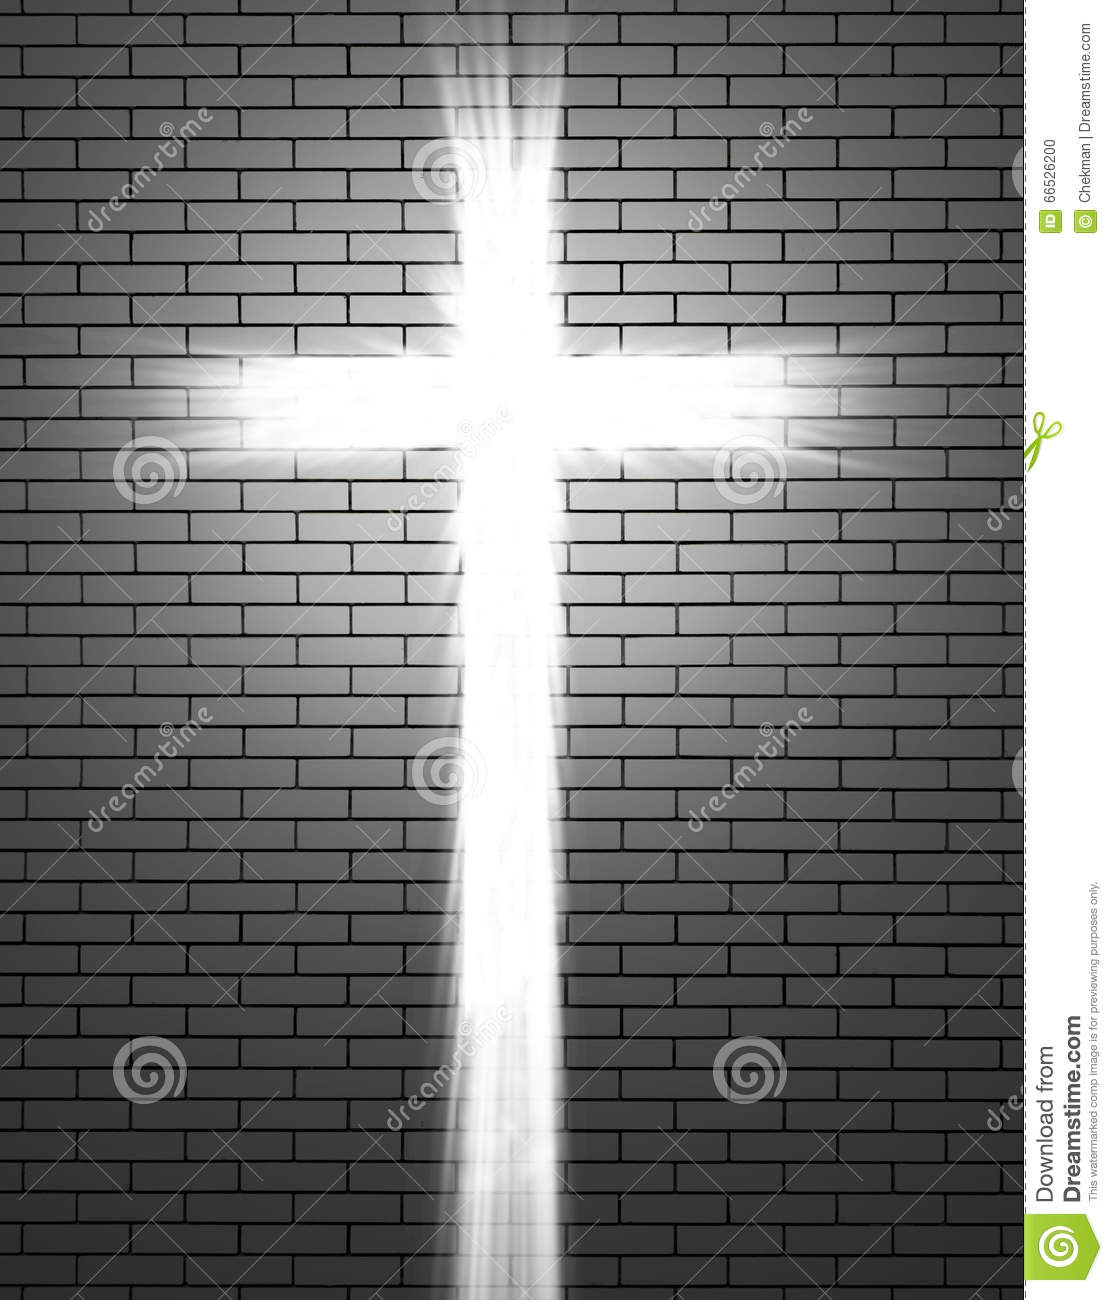 Lights in the shape of a Christian cross